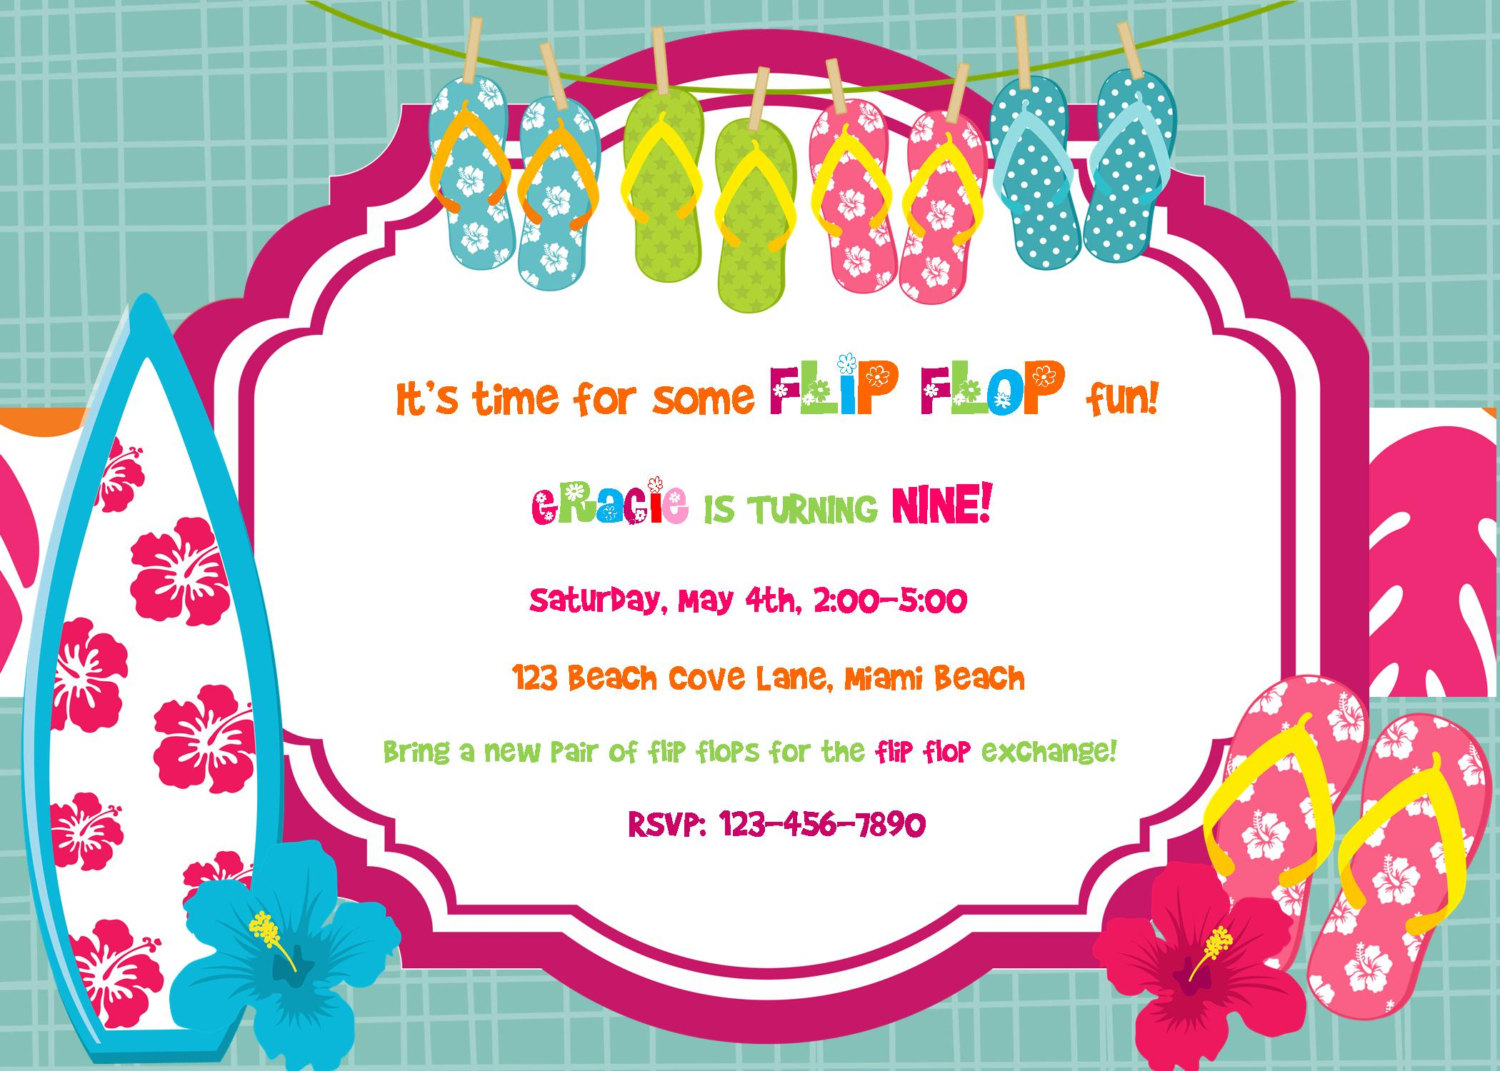 luau invitations clipart  clipart kid, Birthday invitations